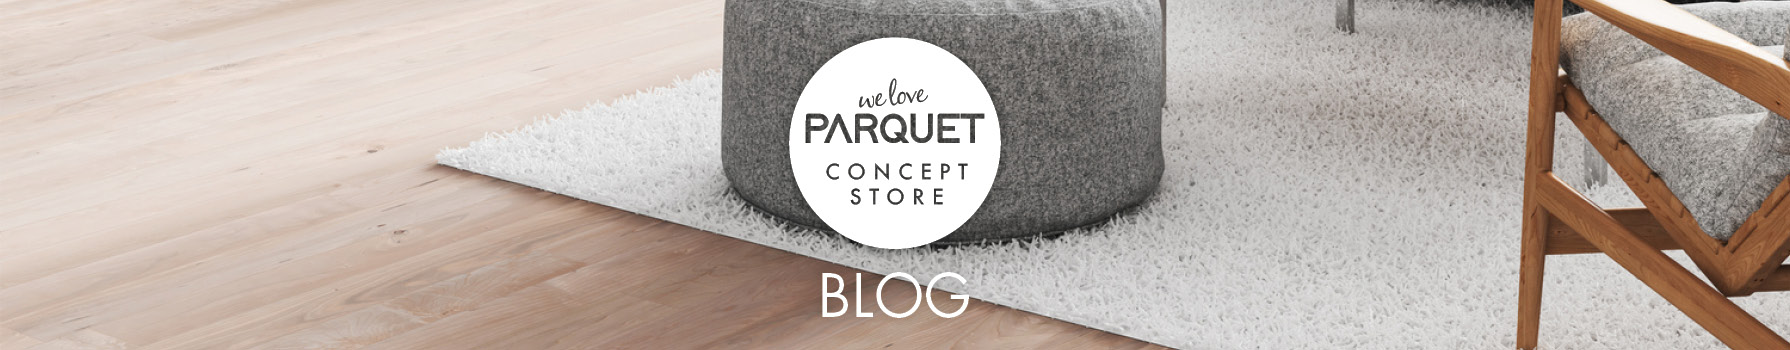 We Love Parquet Blog